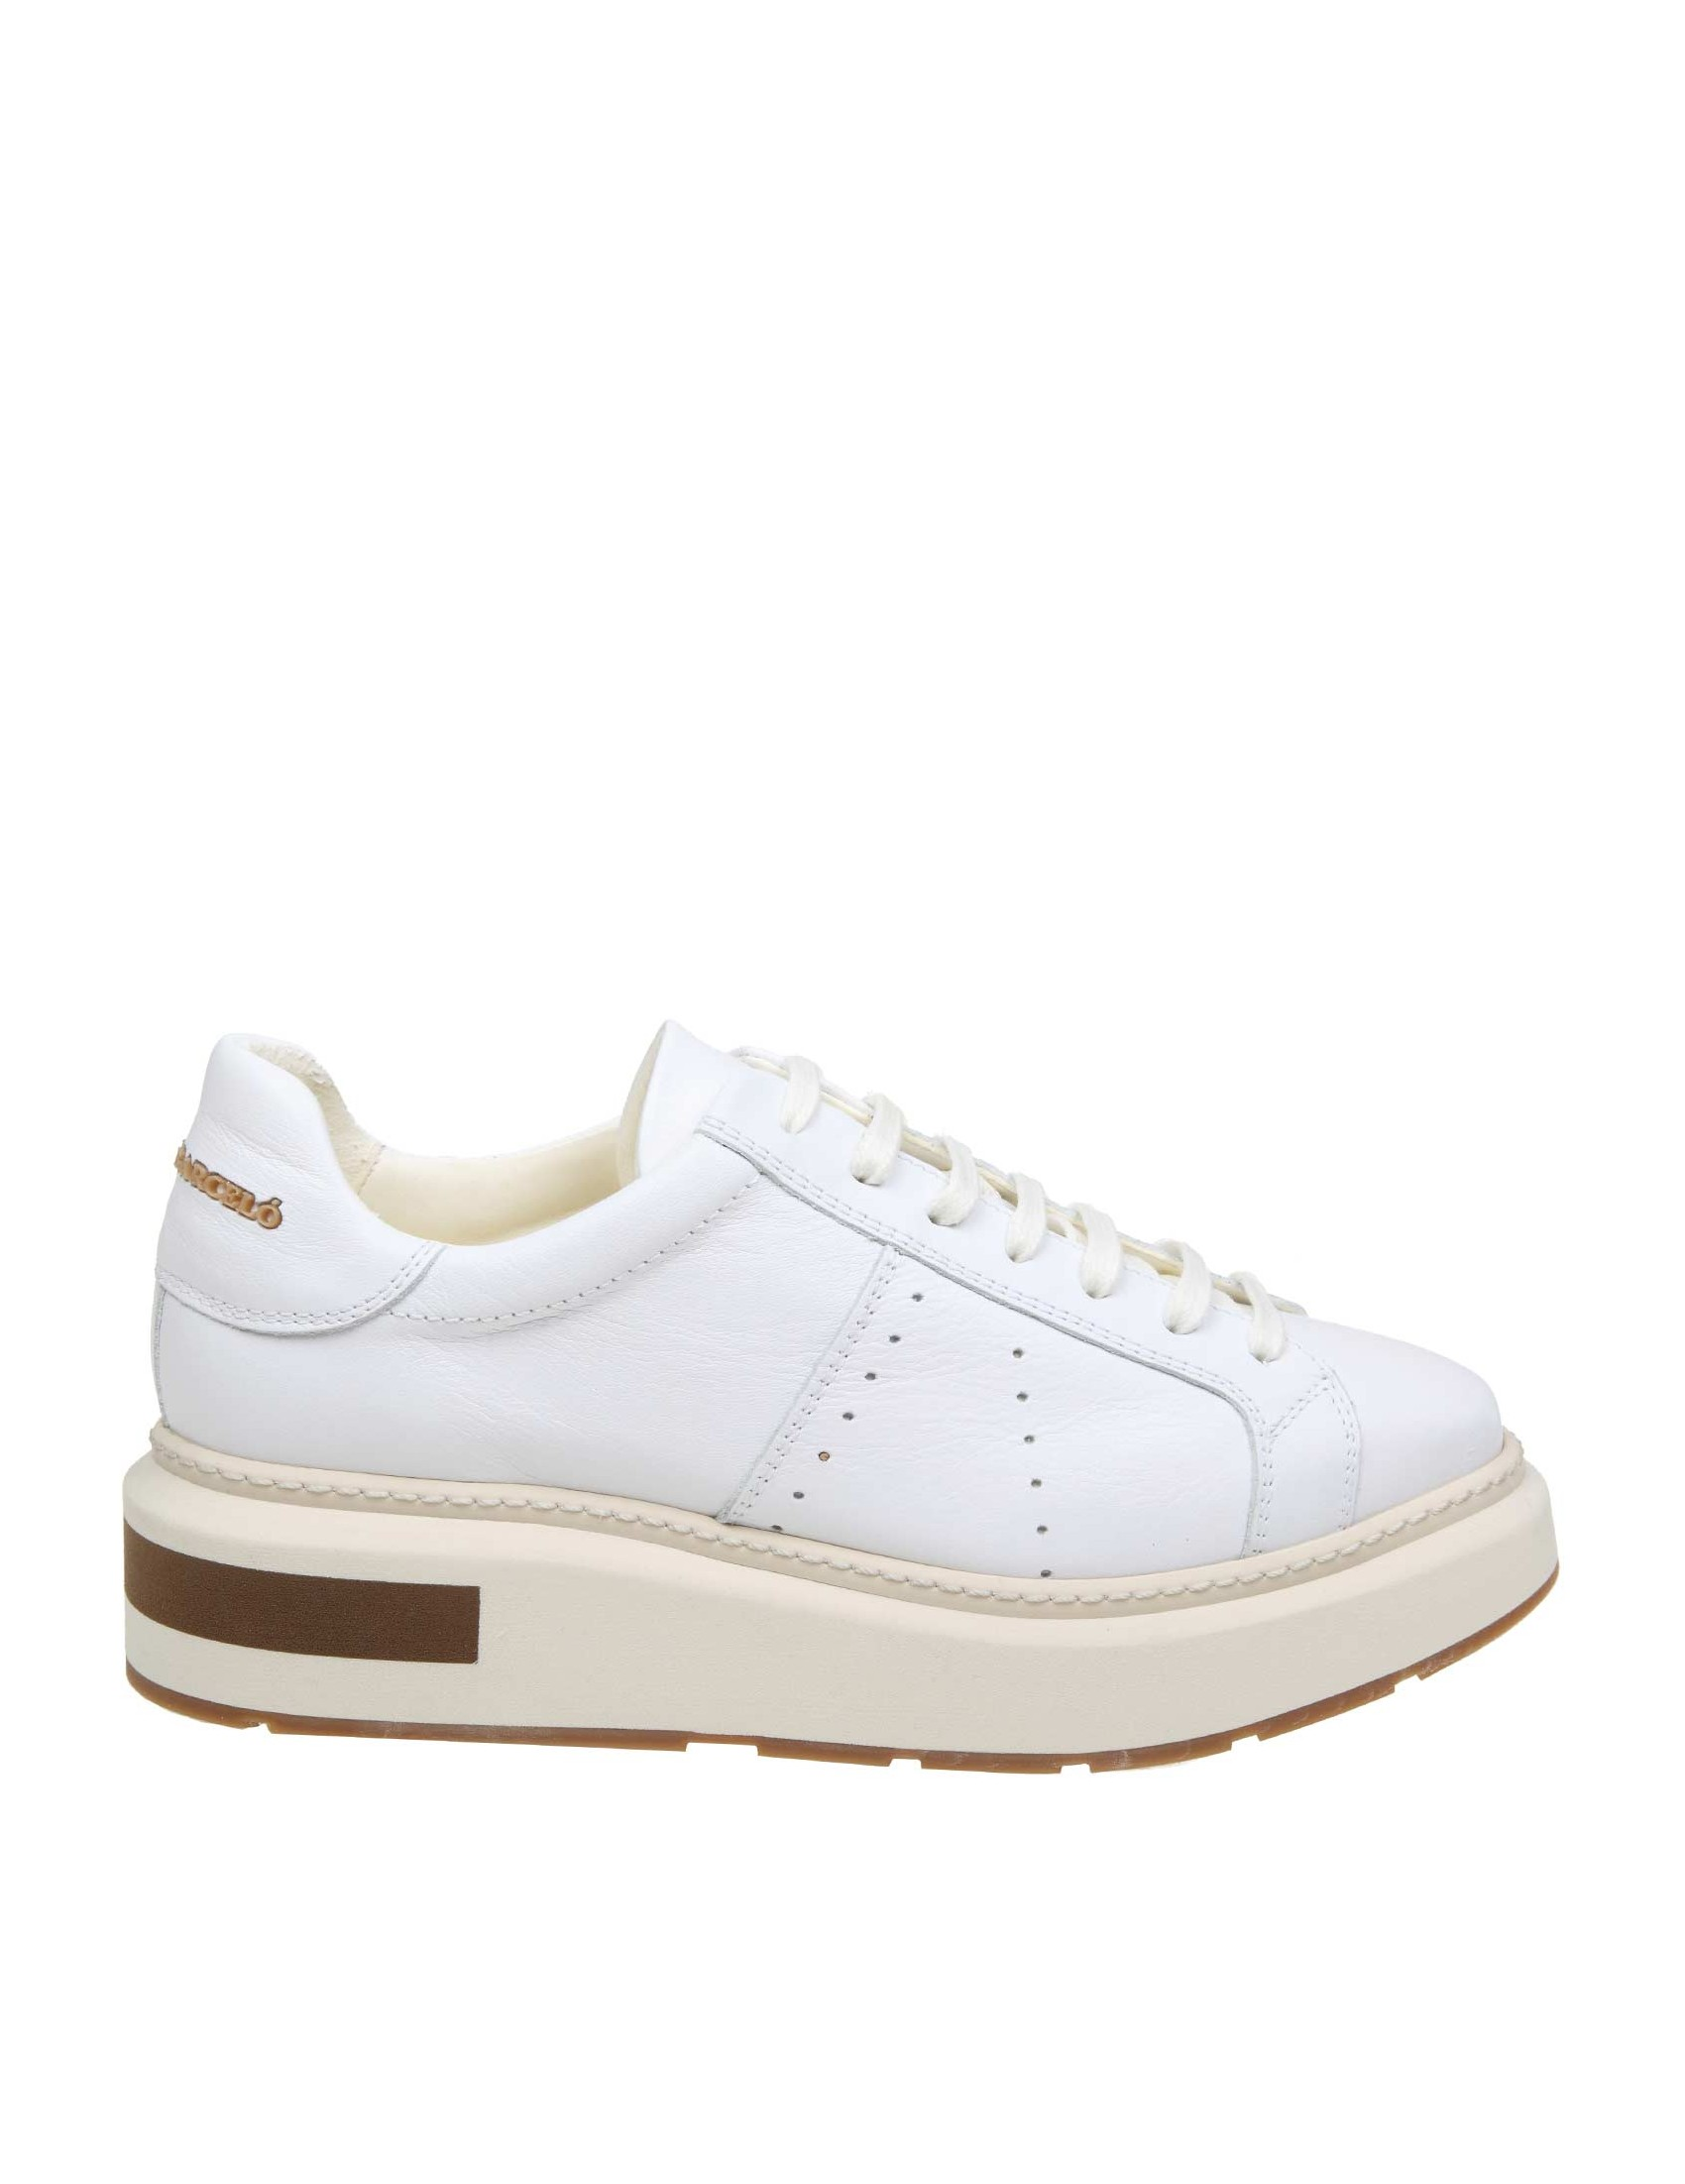 online store c30f7 3ab33 MANUEL BARCELO 'SNEAKERS IN WHITE LEATHER